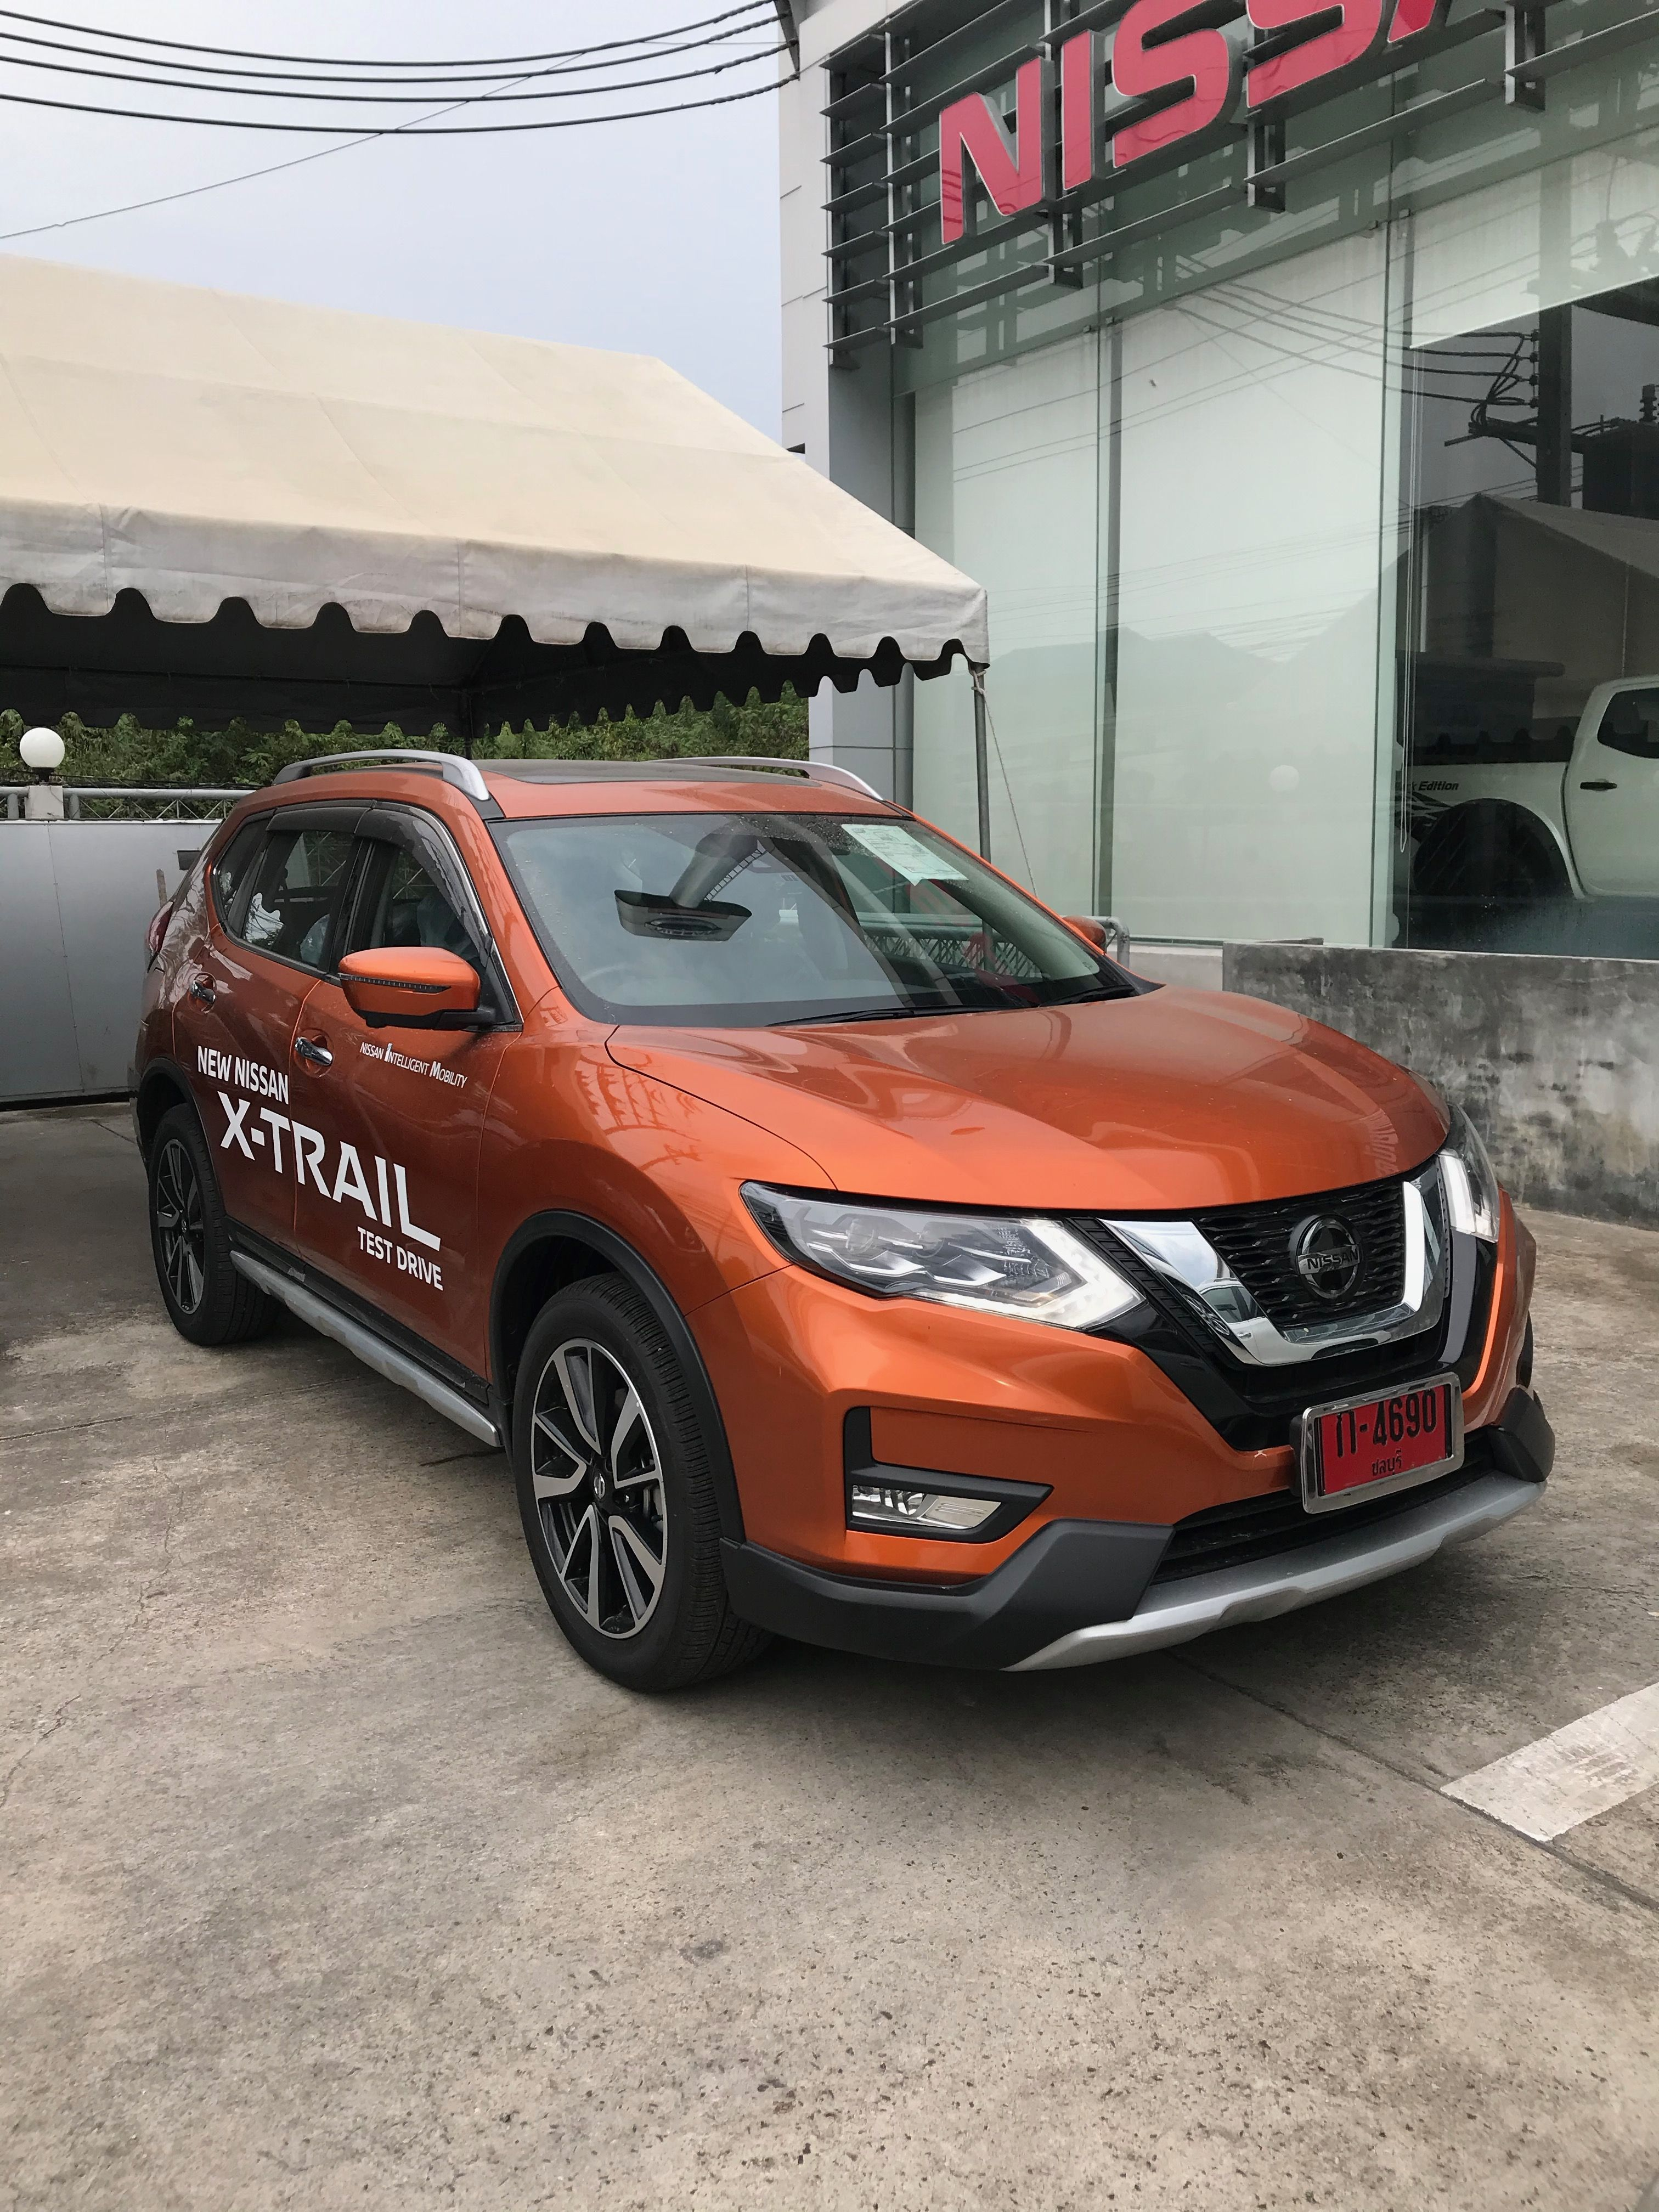 Nissan X Trail 2 5vl 4wd 2020 37 Lakh Real Life Review Nissan Nissan Xtrail Nissan Rogue